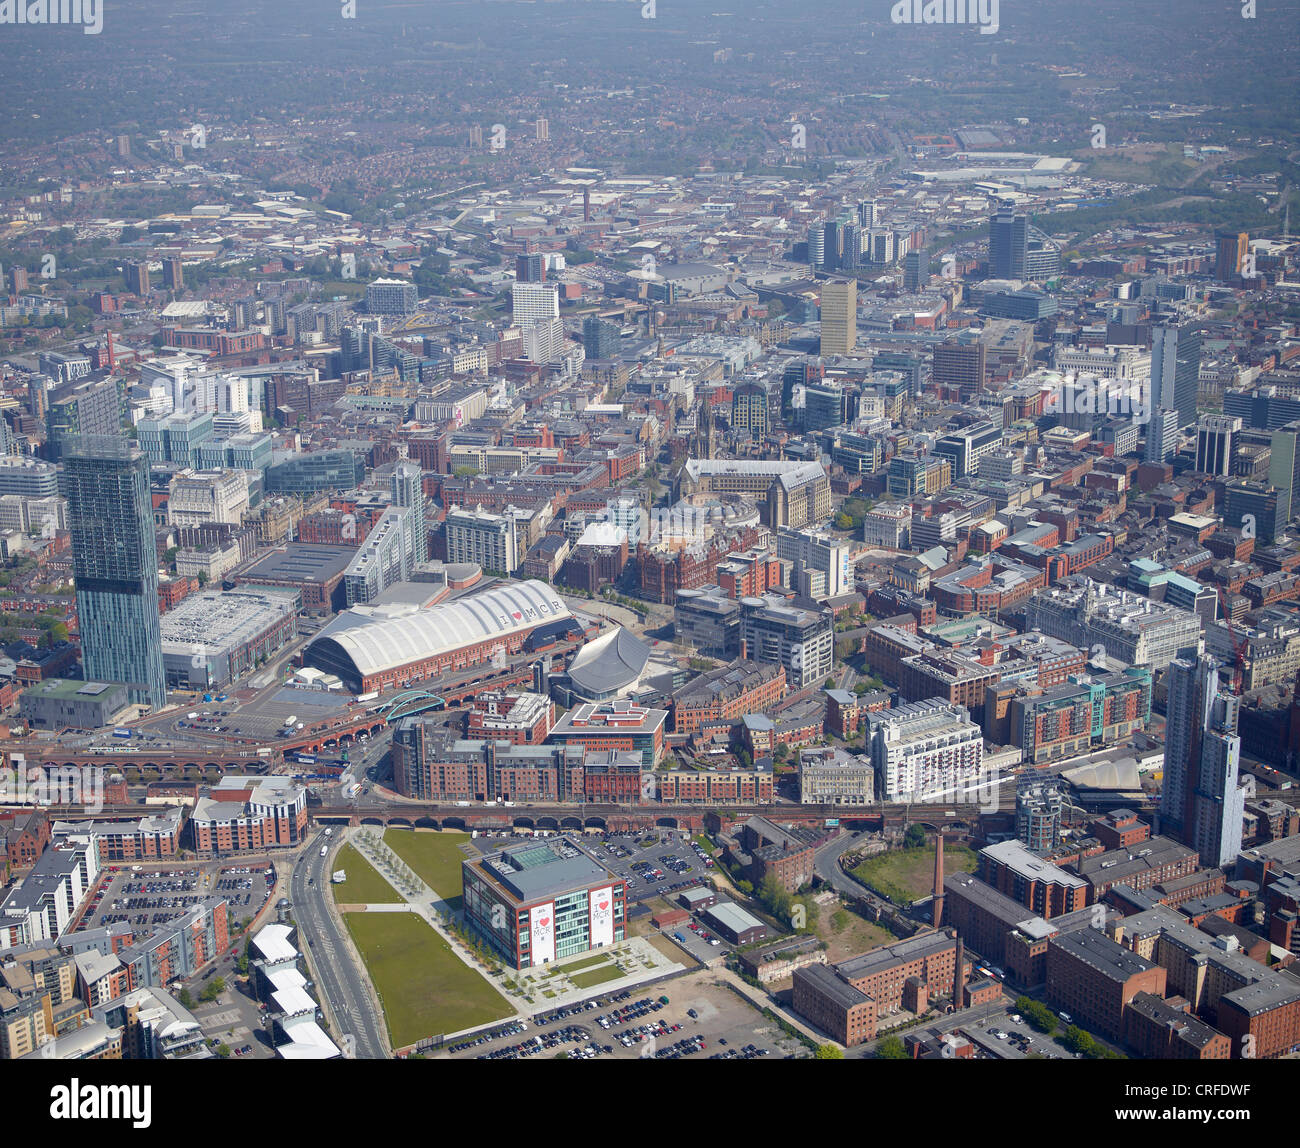 Manchester City Centre, from the air, North West England, Beetham Tower and The Exchange in the foreground - Stock Image